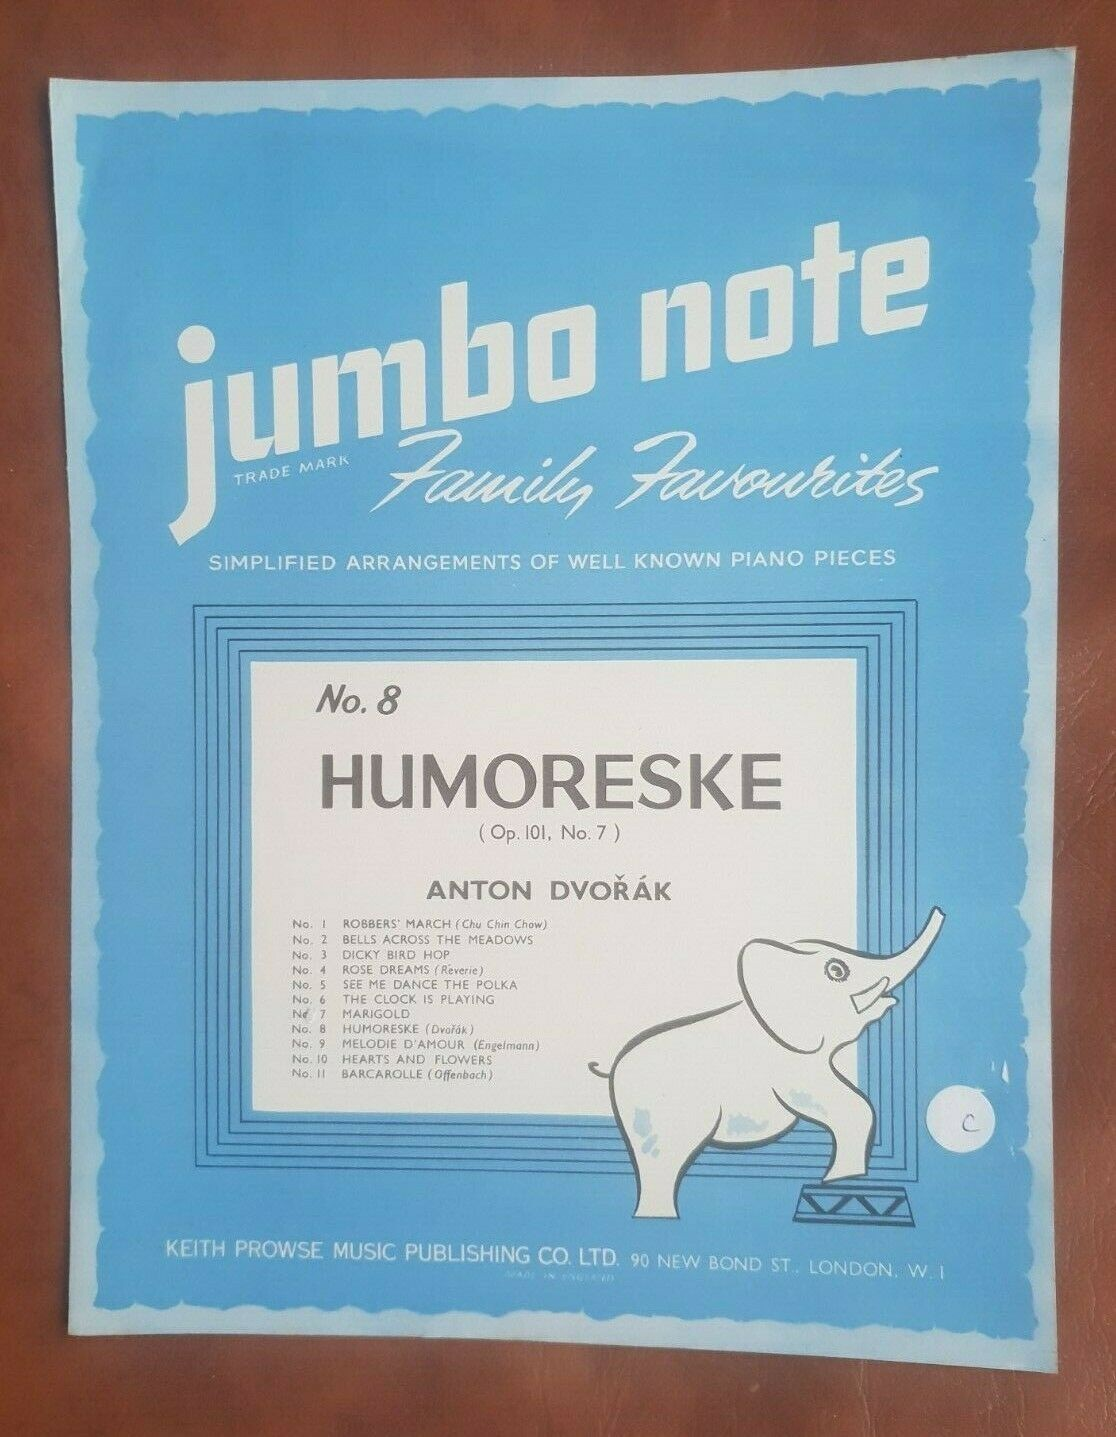 Humoreske Piano Simple Arrangement Jumbo Note Sheet Music No.8 Keith Prowse S89